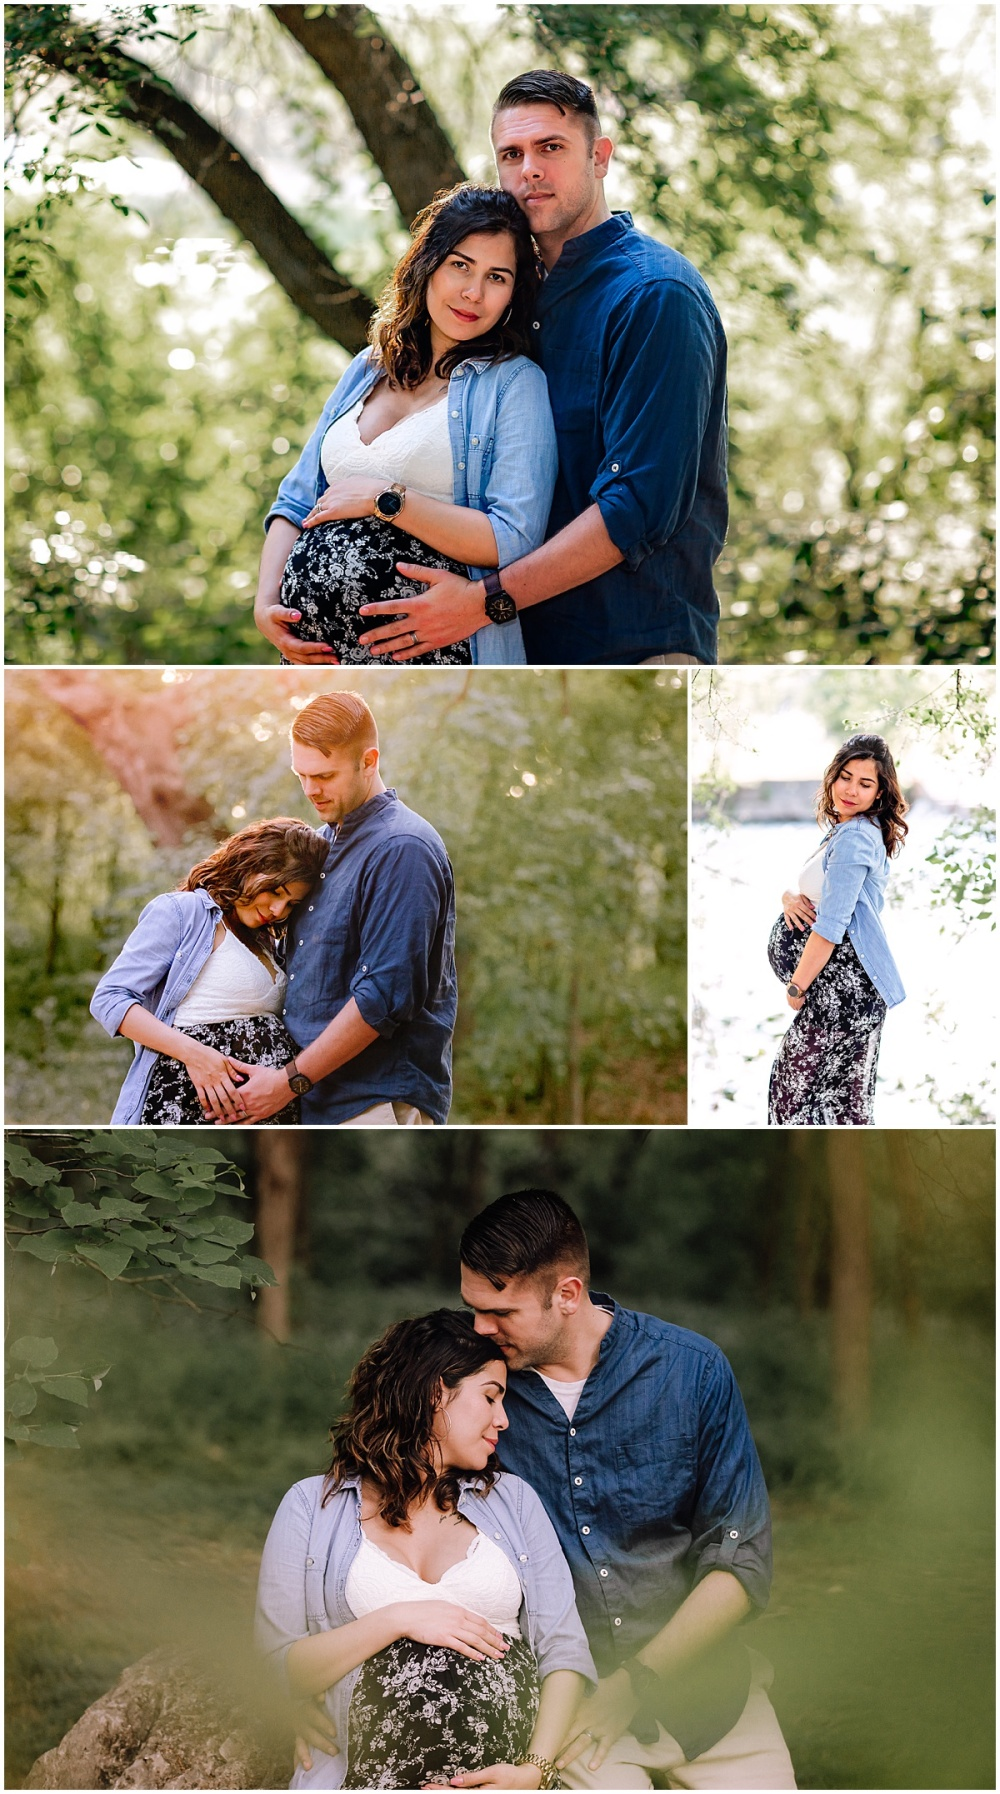 Maternity-Photo-Session-Brakenridge-Park-San-Antonio-Texas-Carly-Barton-Photography_0009.jpg